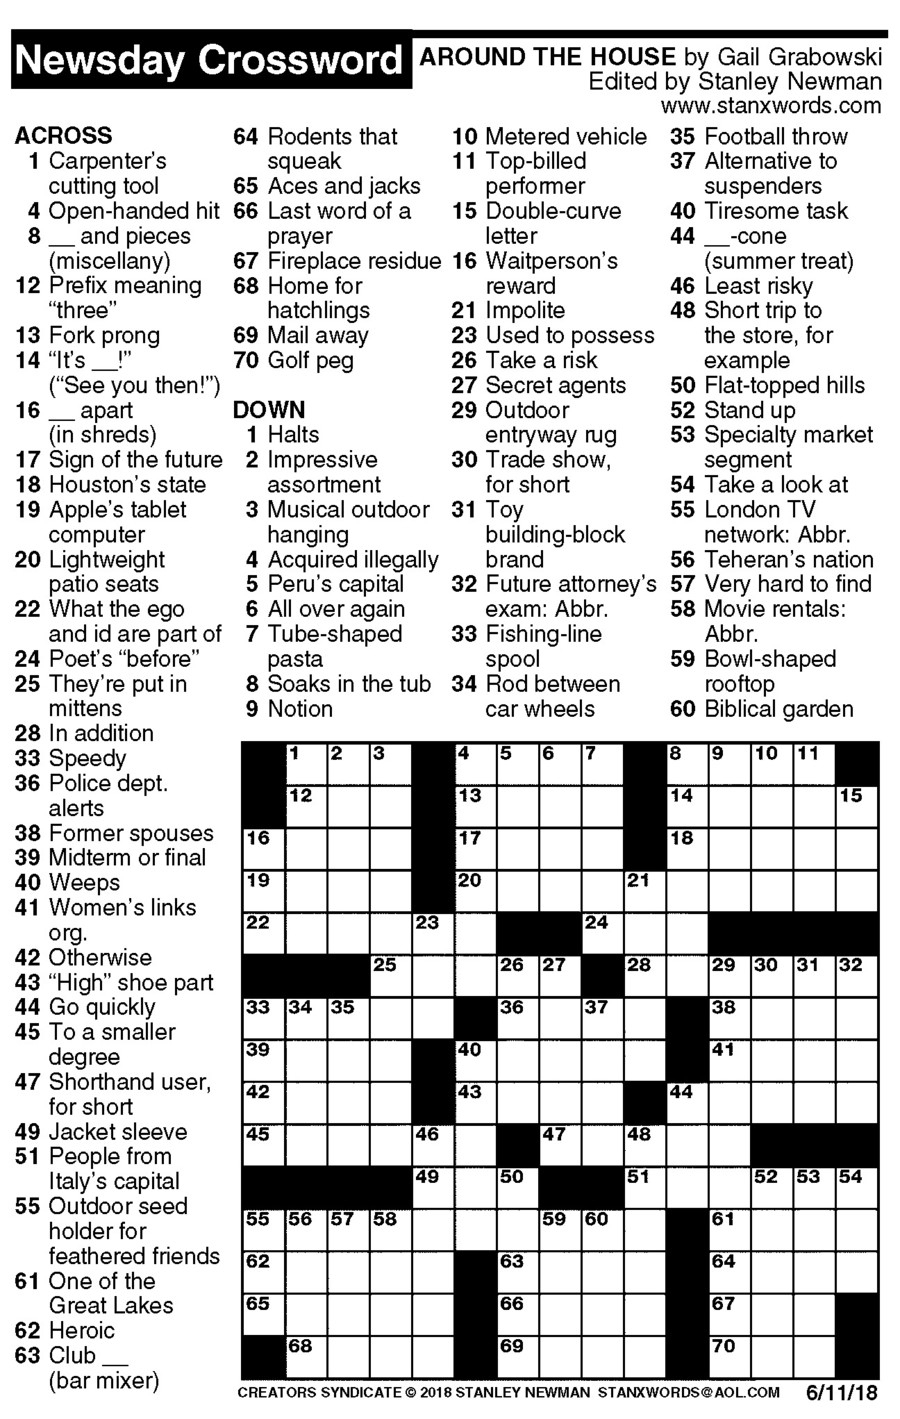 Newsday Crossword Puzzle For Jun 11, 2018,stanley Newman - Printable Crossword Puzzles Newsday